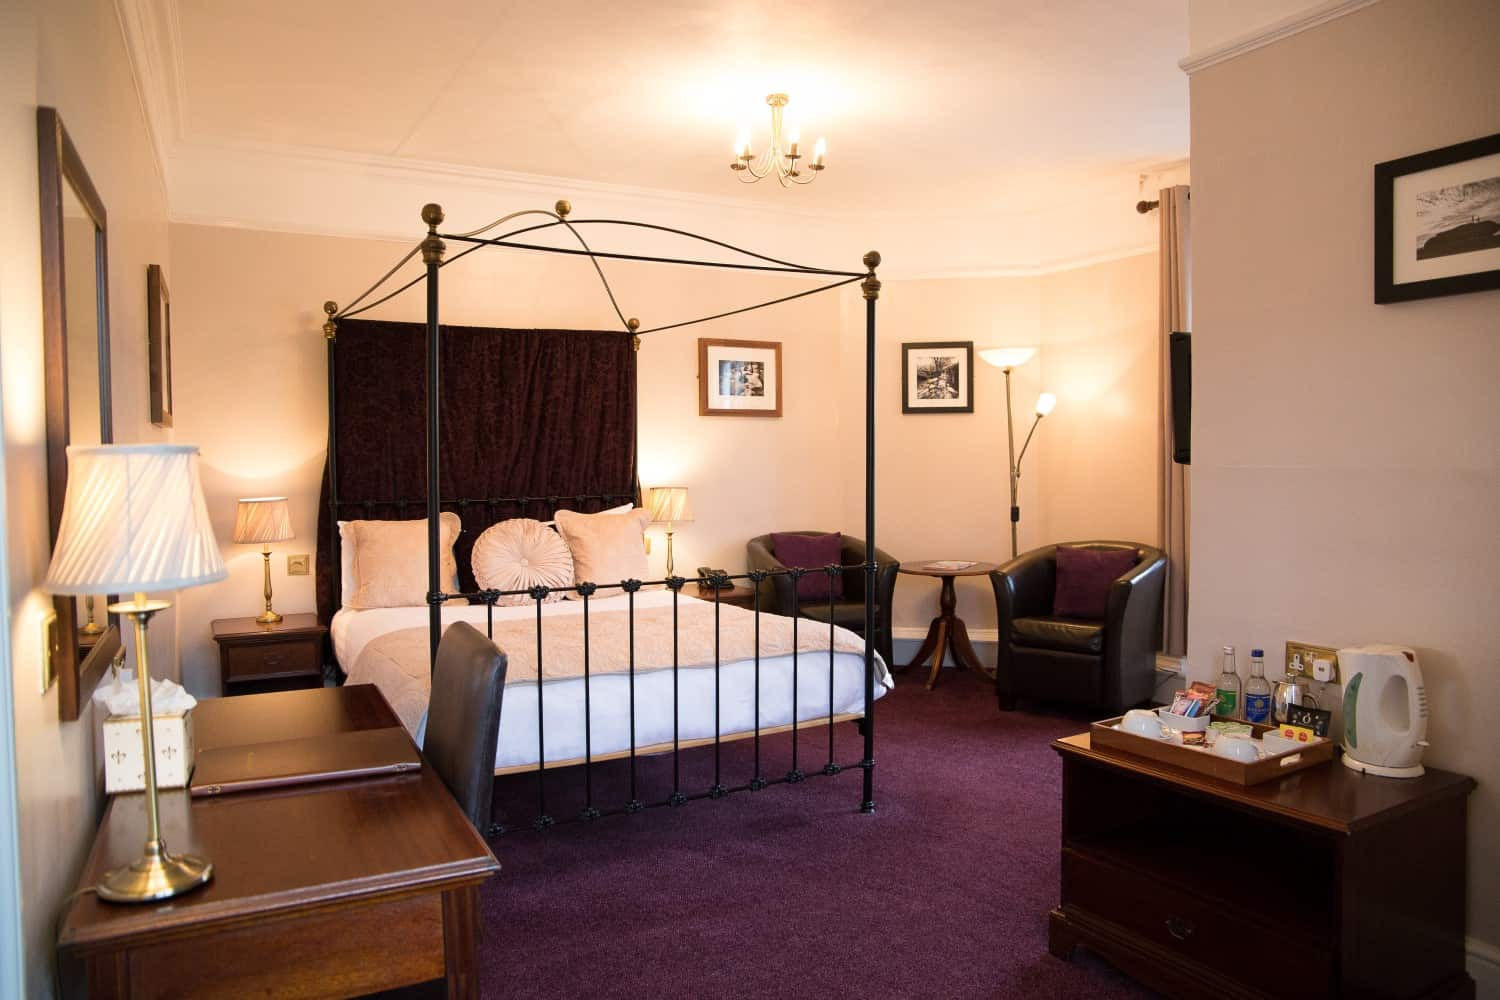 Deluxe Double room at The Bedford Hotel Tavistock